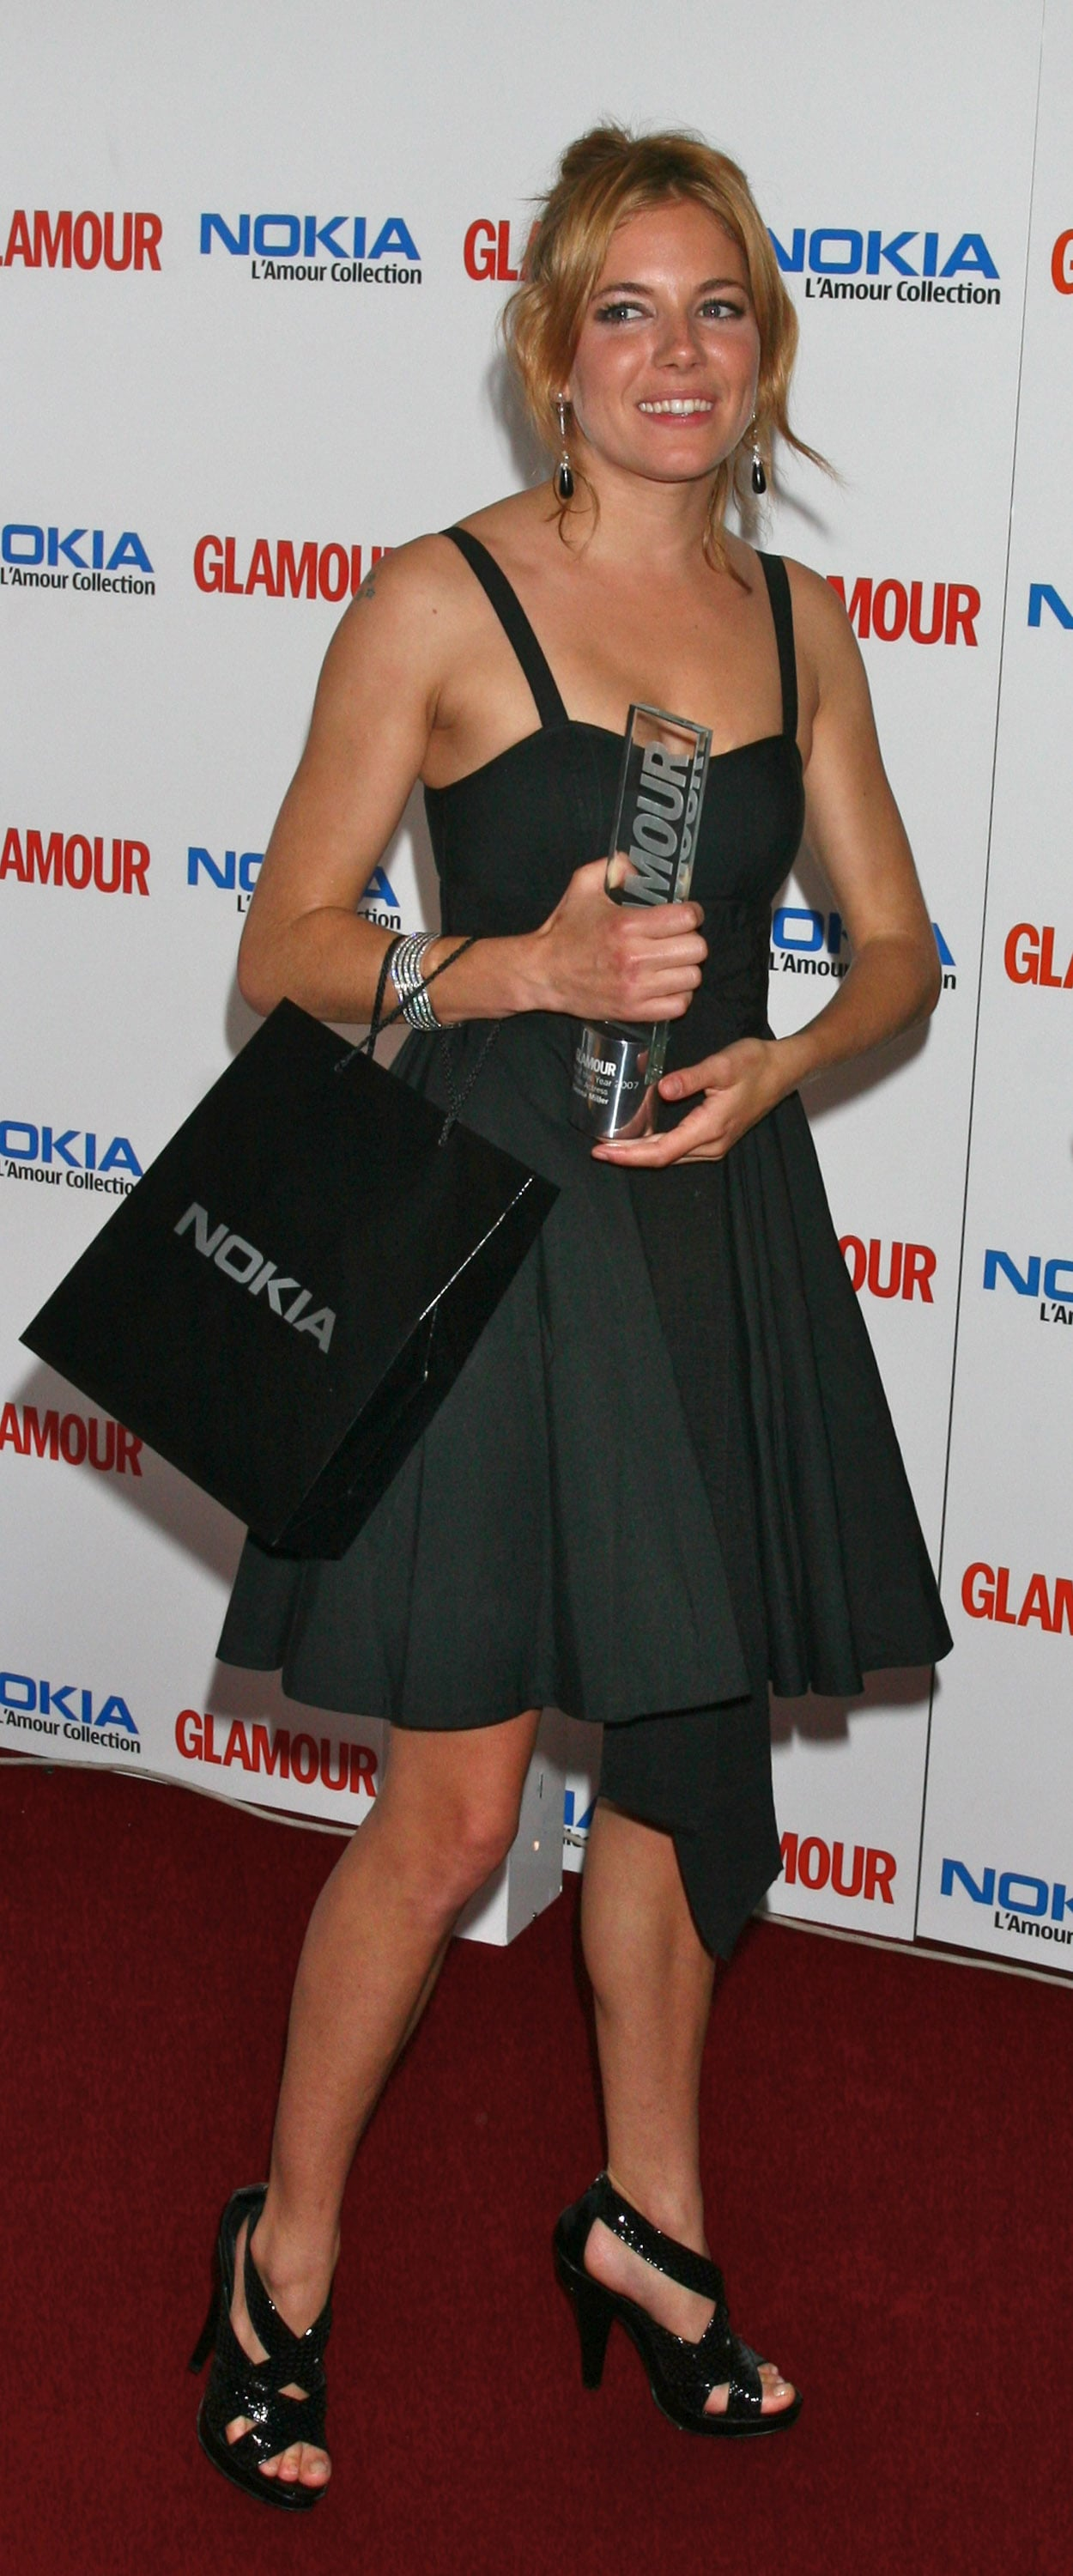 Sienna wore a flirty LBD for the Glamour Women of the Year Awards in 2007.